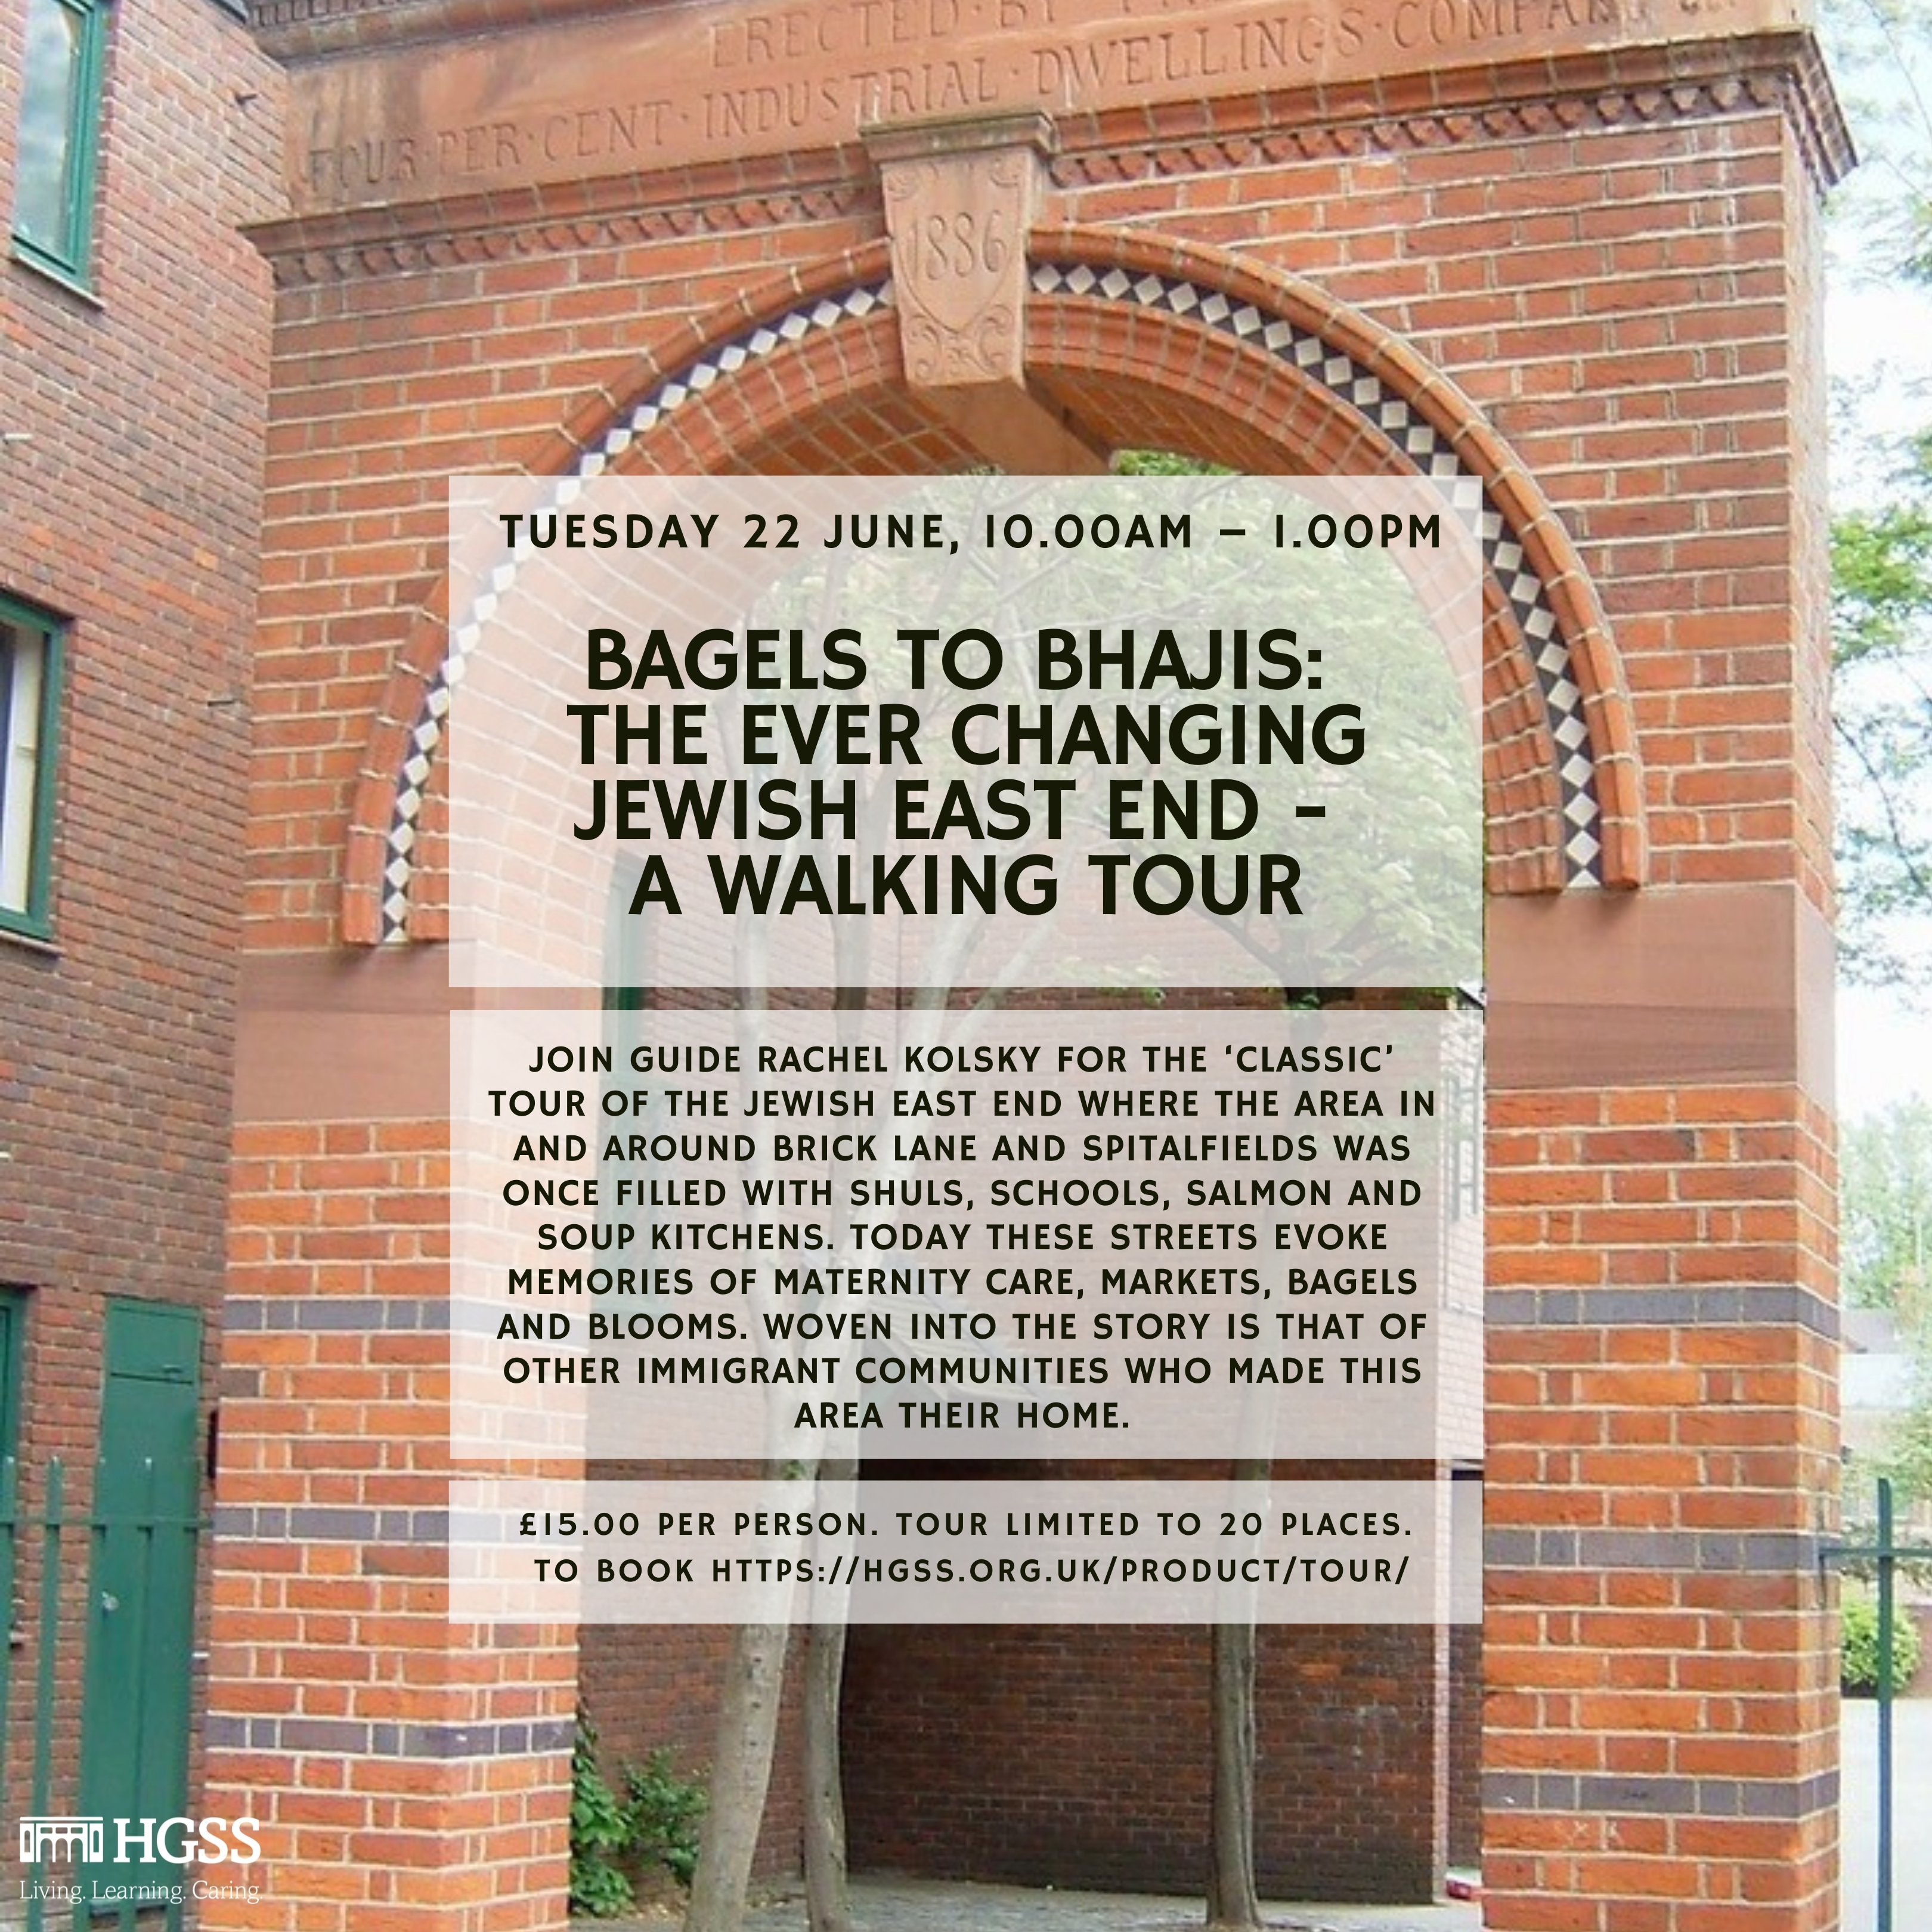 Bagels to Bhajis: The Ever Changing Jewish East End - A Walking Tour